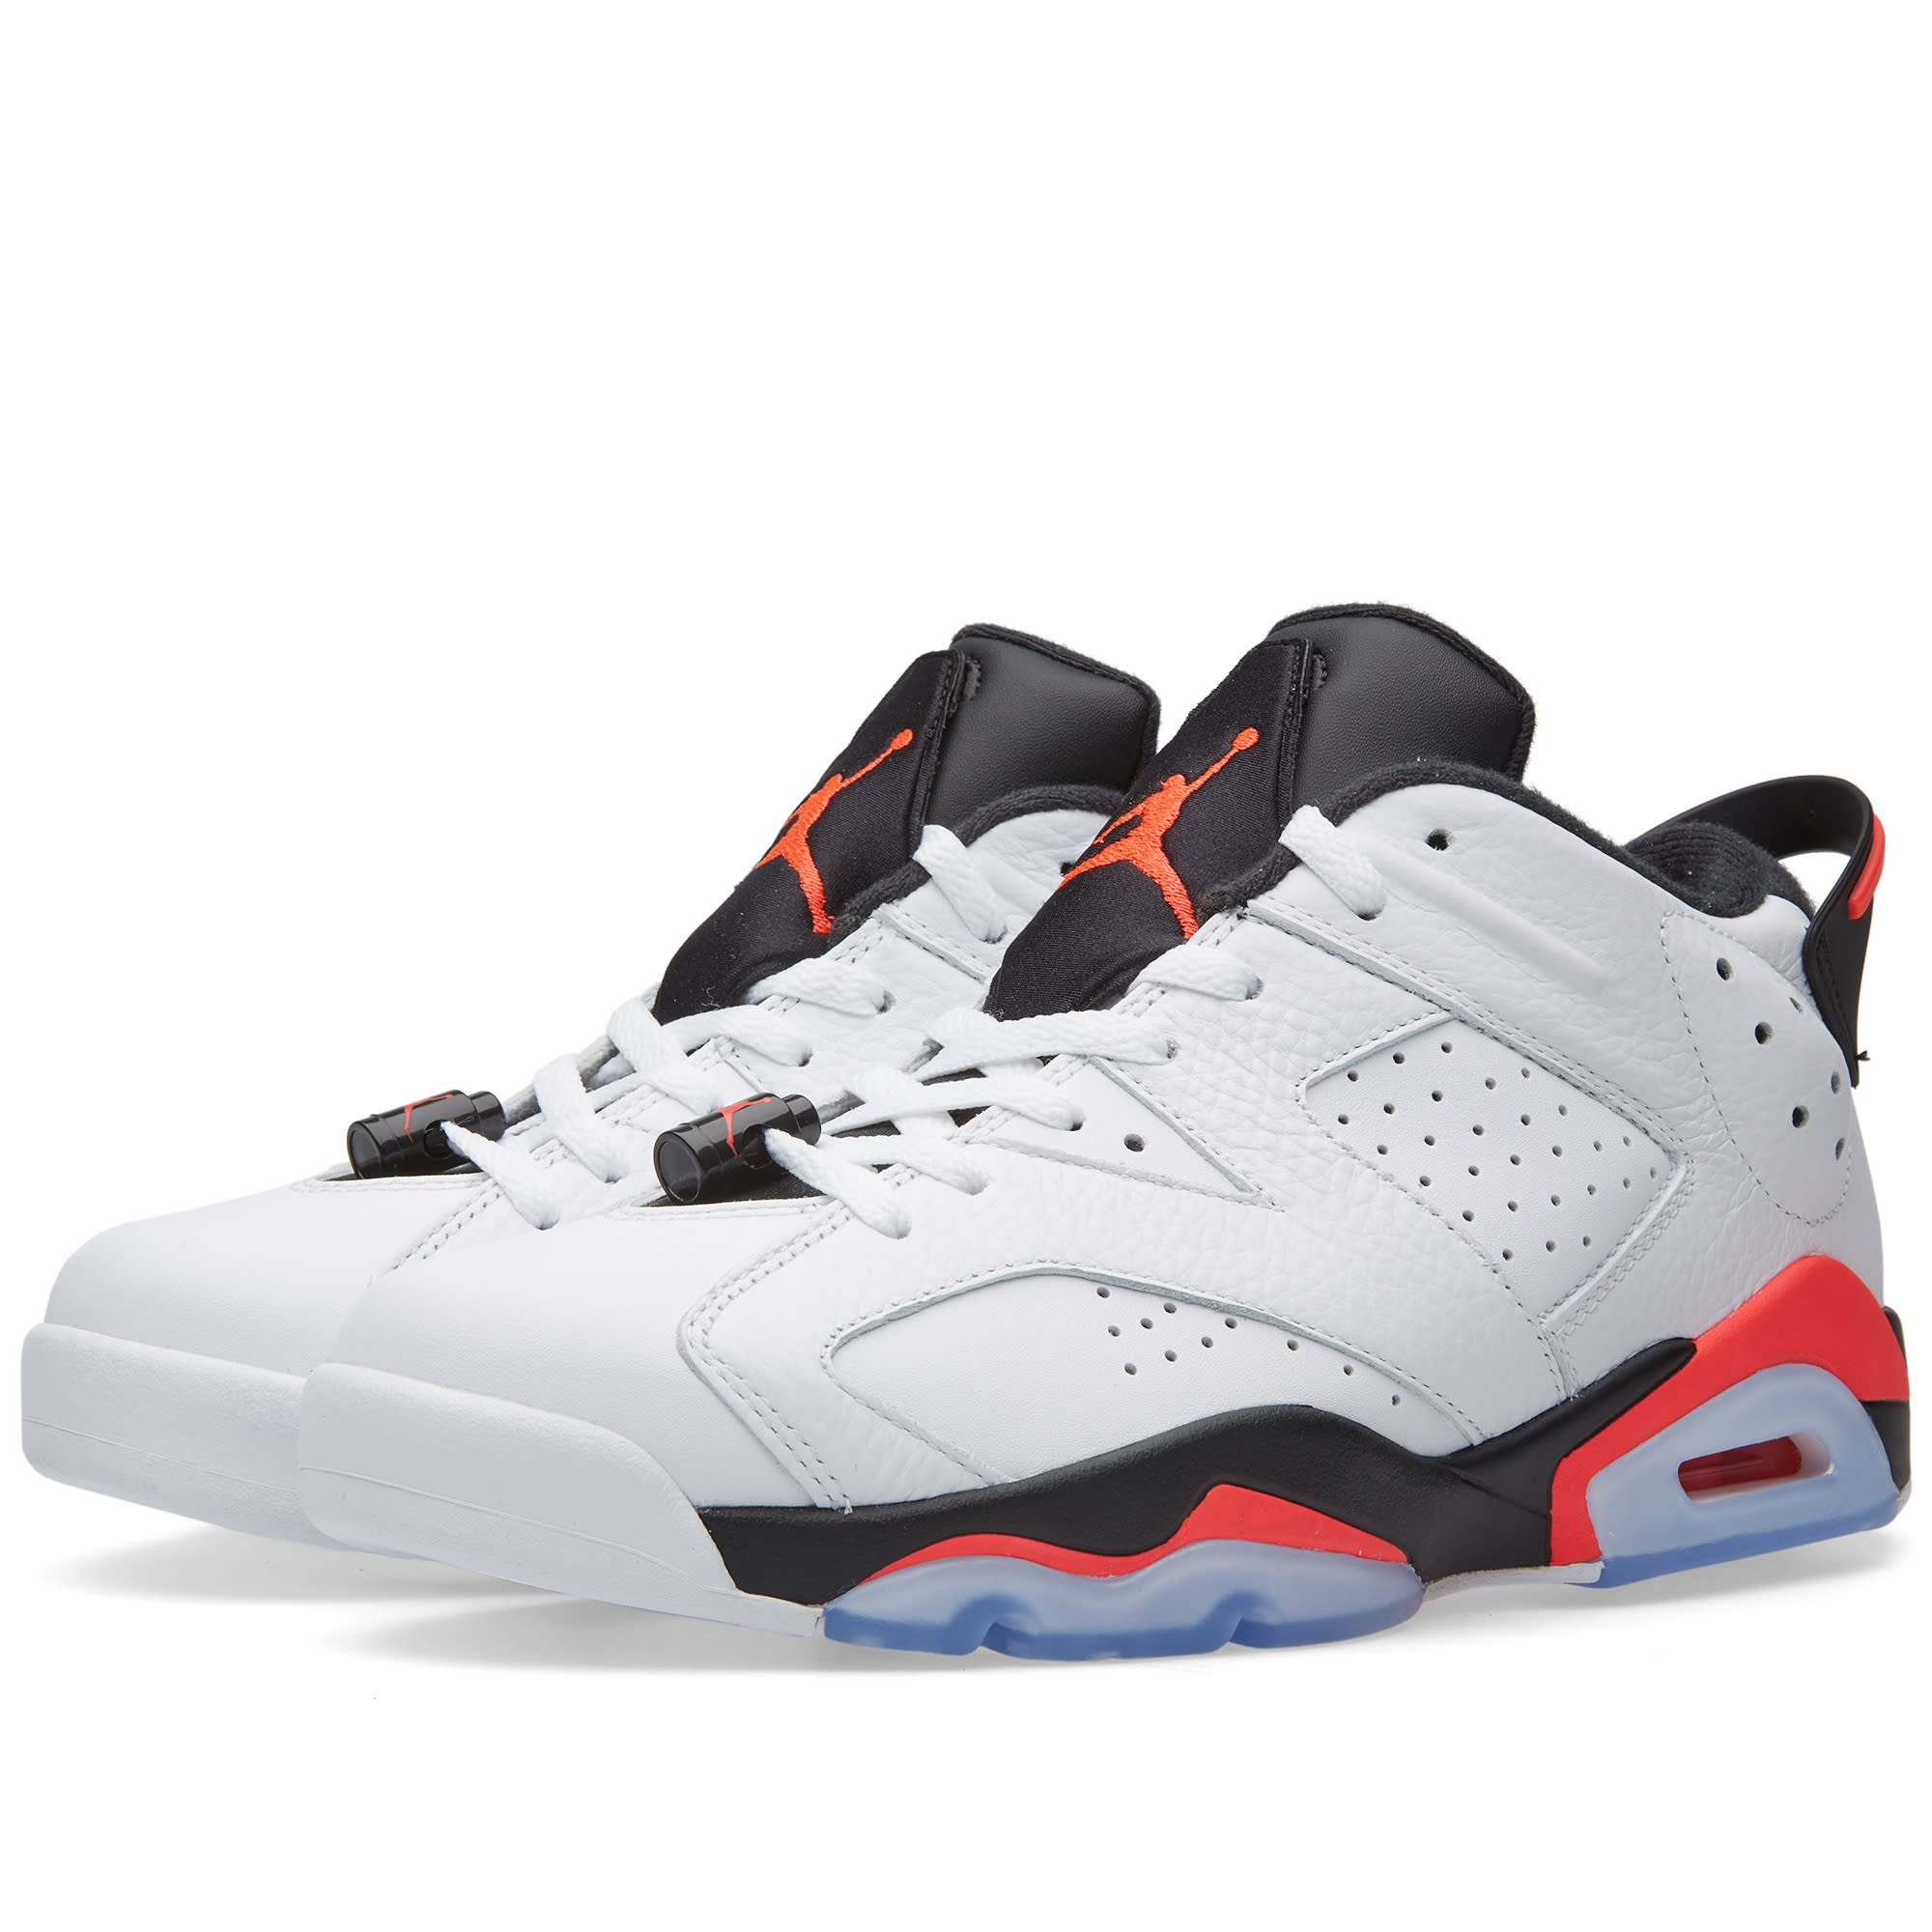 new concept 0a659 d31f2 Nike Air Jordan 6 Retro Low